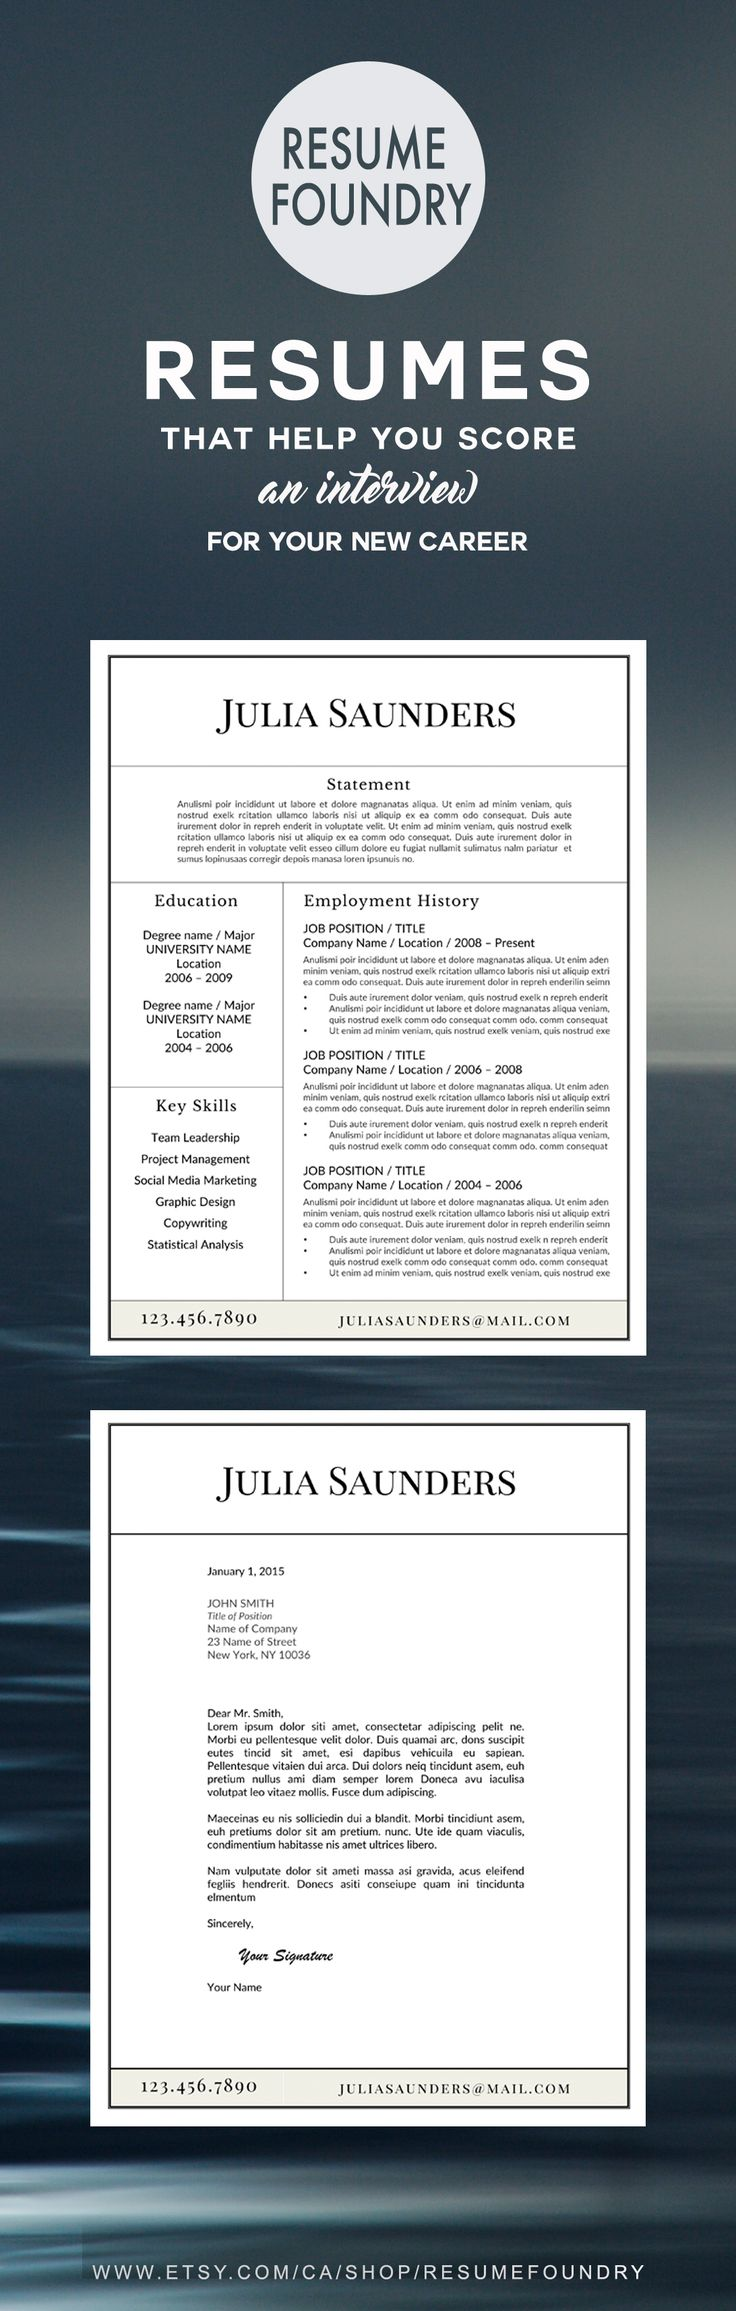 Word Cv Templates 2007%0A Professionally designed resume template  For use with Microsoft Word   Includes      or